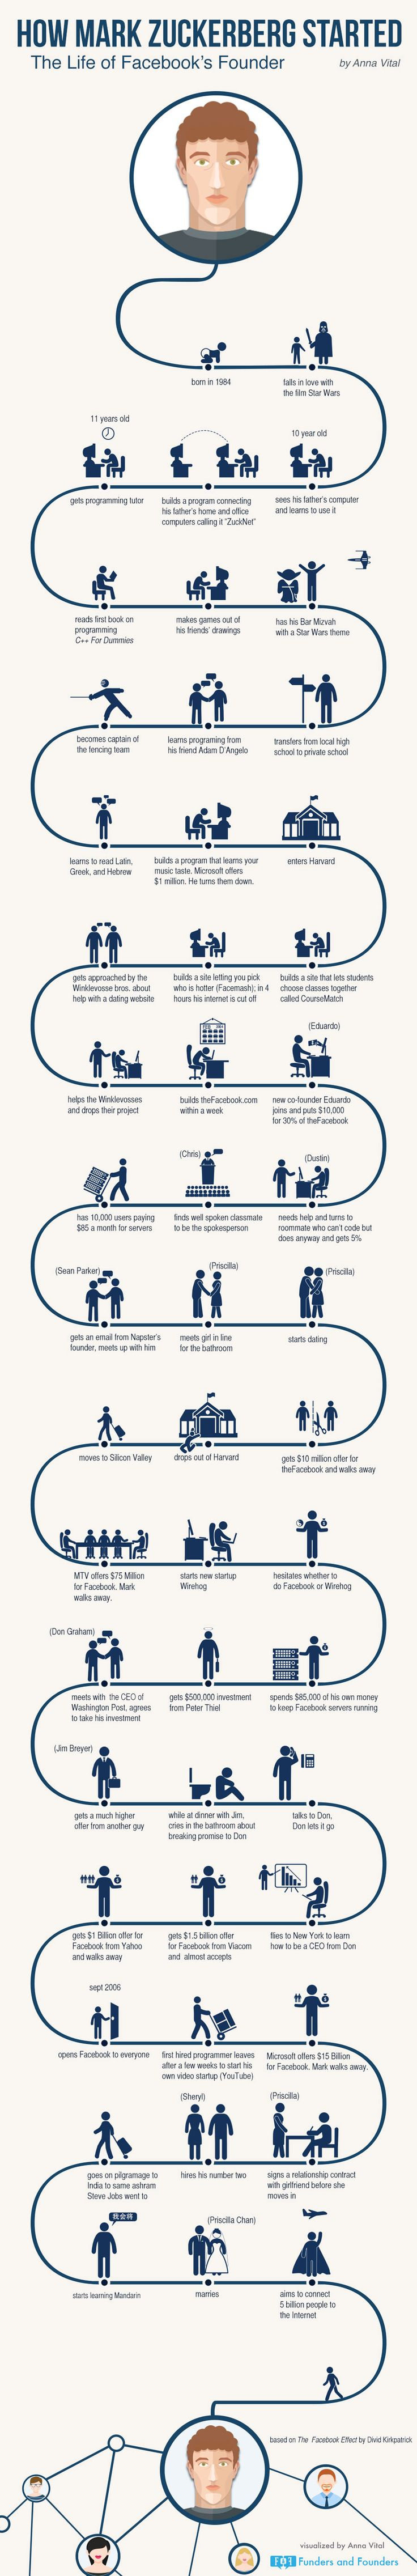 Infographic about Mark Zuckerberg's journey to success. | THE UT.LAB | Gets inspiration from great thinkers like Mark Zuckerberg *